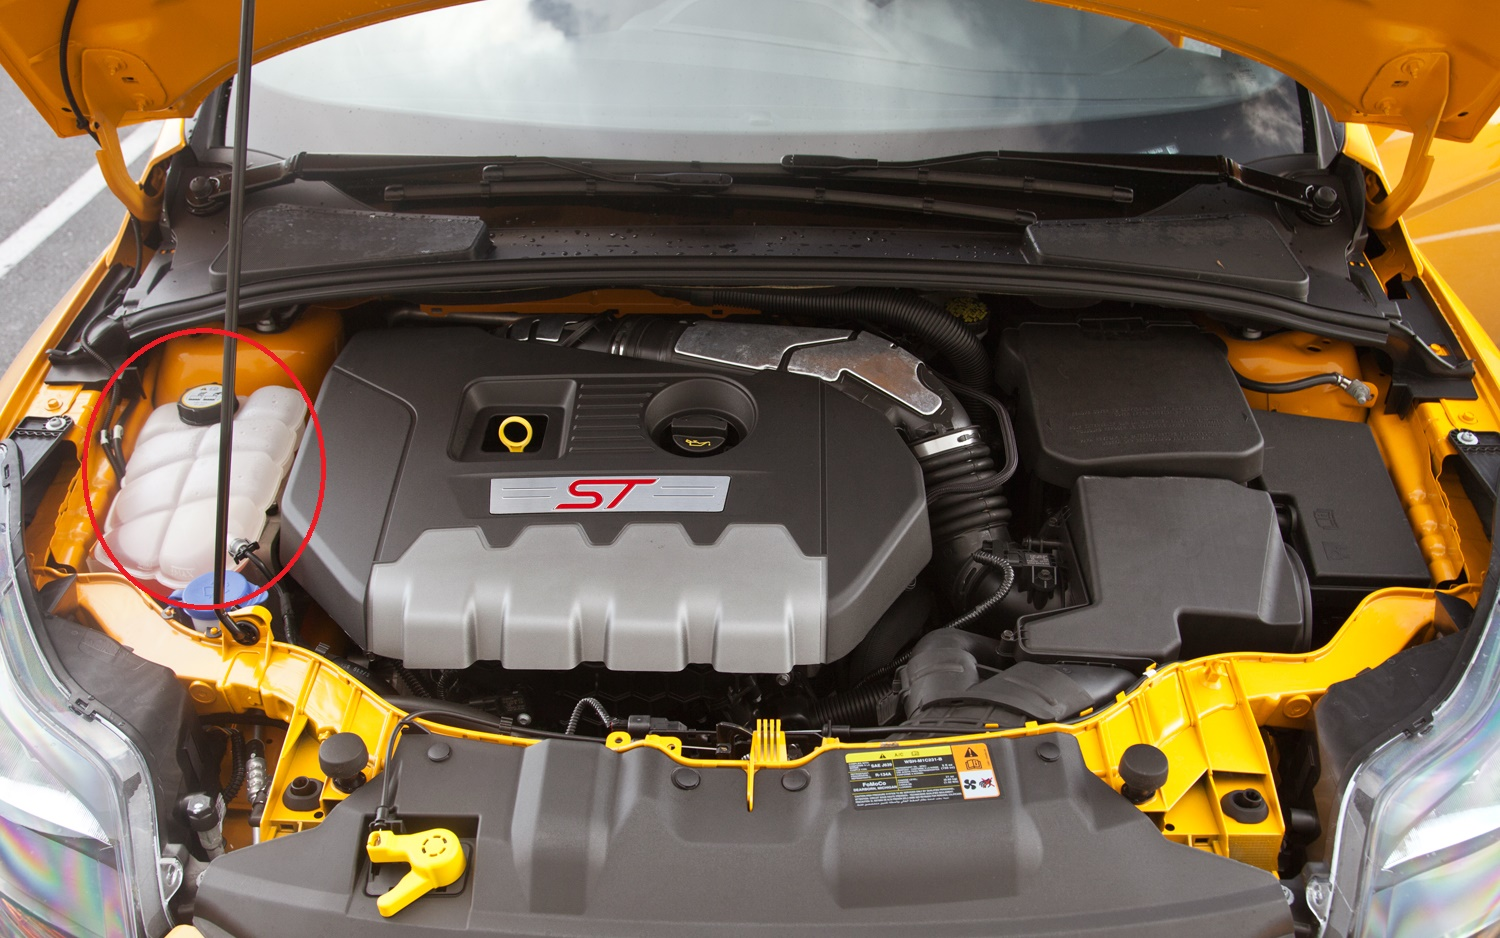 Ford Focus Coolant British Automotive Engine Can We Get An Aluminum Overflow Tank Maybe In Anodized 2003